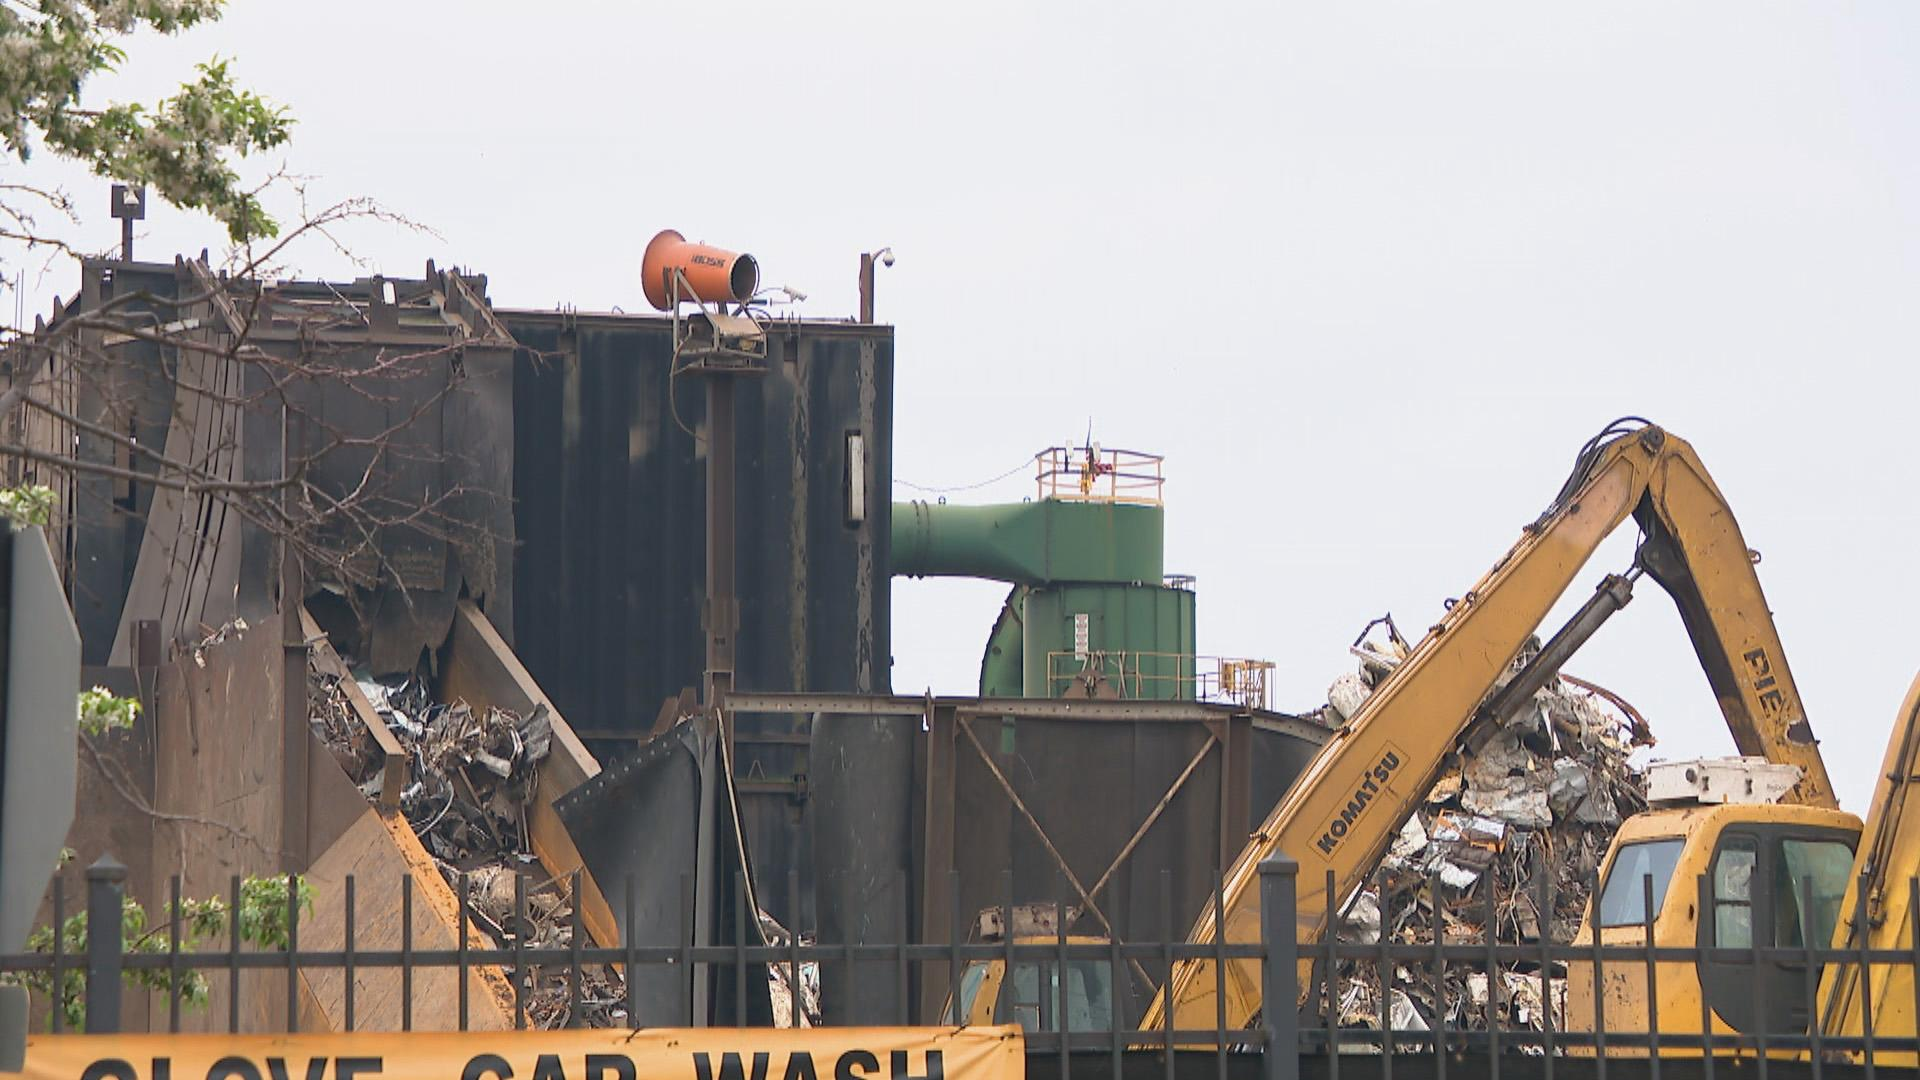 General Iron is planning to move its metal shredding operation from Lincoln Park to the Southeast Side. (WTTW News)